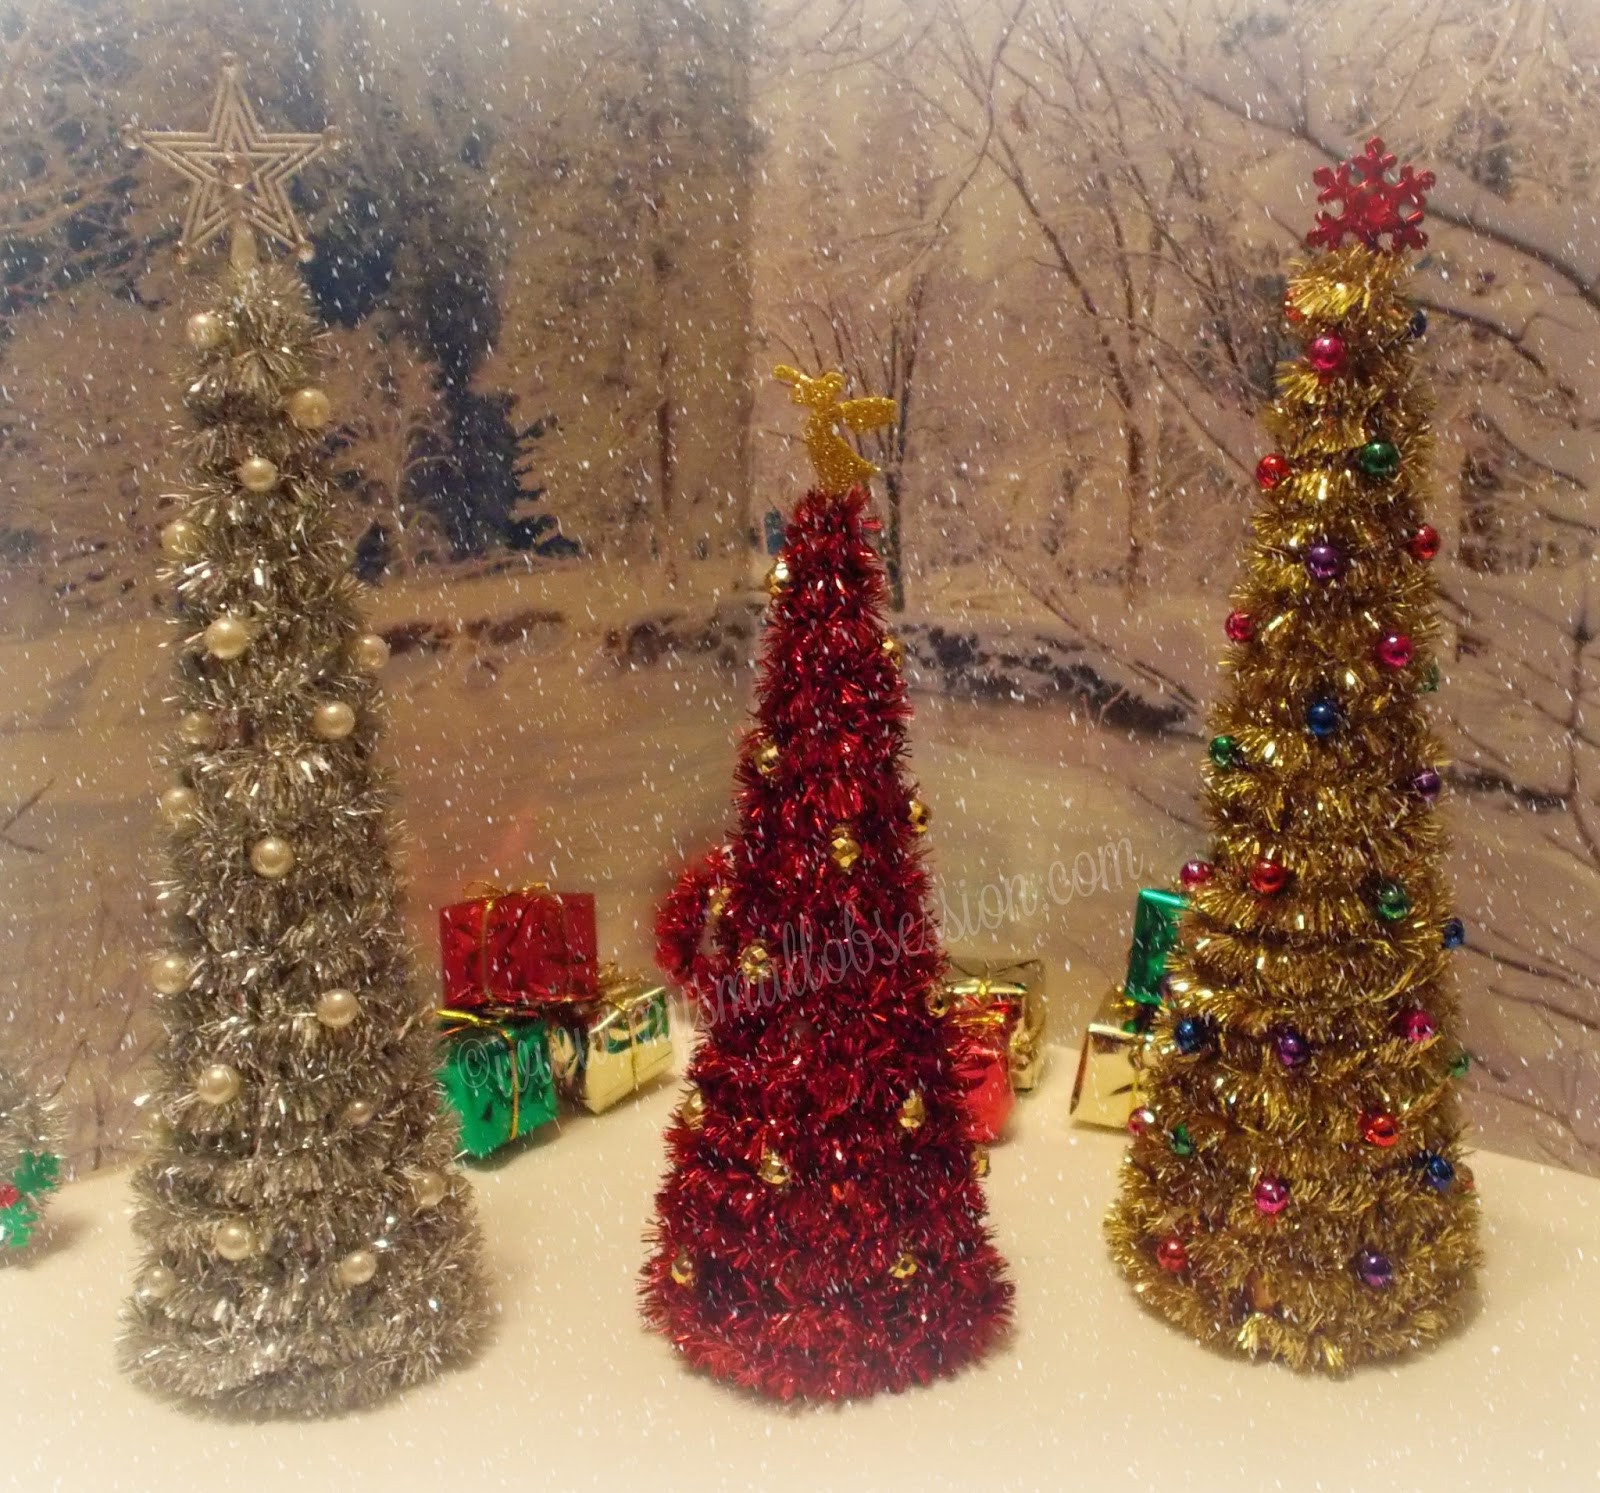 DIY Mini Christmas Trees  My Small Obsession Easy DIY Miniature Christmas Trees